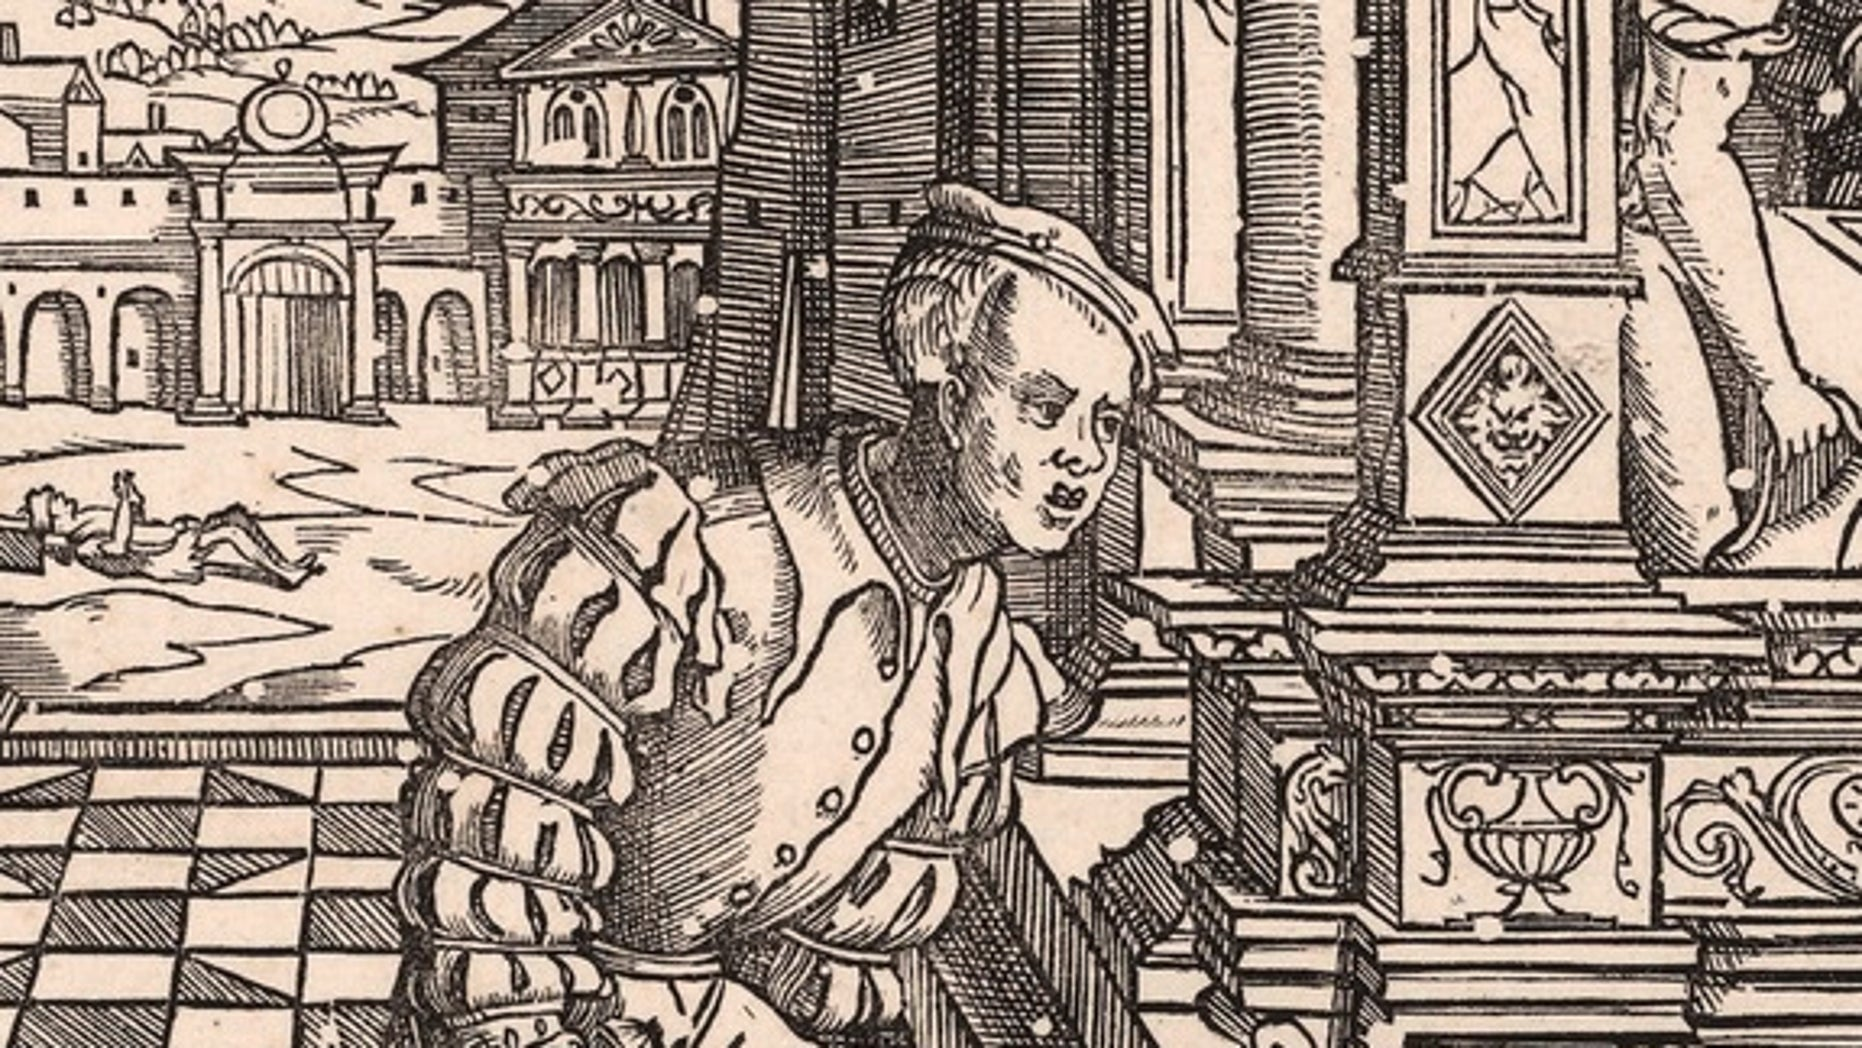 """The 1541 woodcut """"De Rijke Man"""" (The Rich Man) by Cornelius Anthonisz. White circles reveal where furniture beetles gnawed through the wood block before printing."""